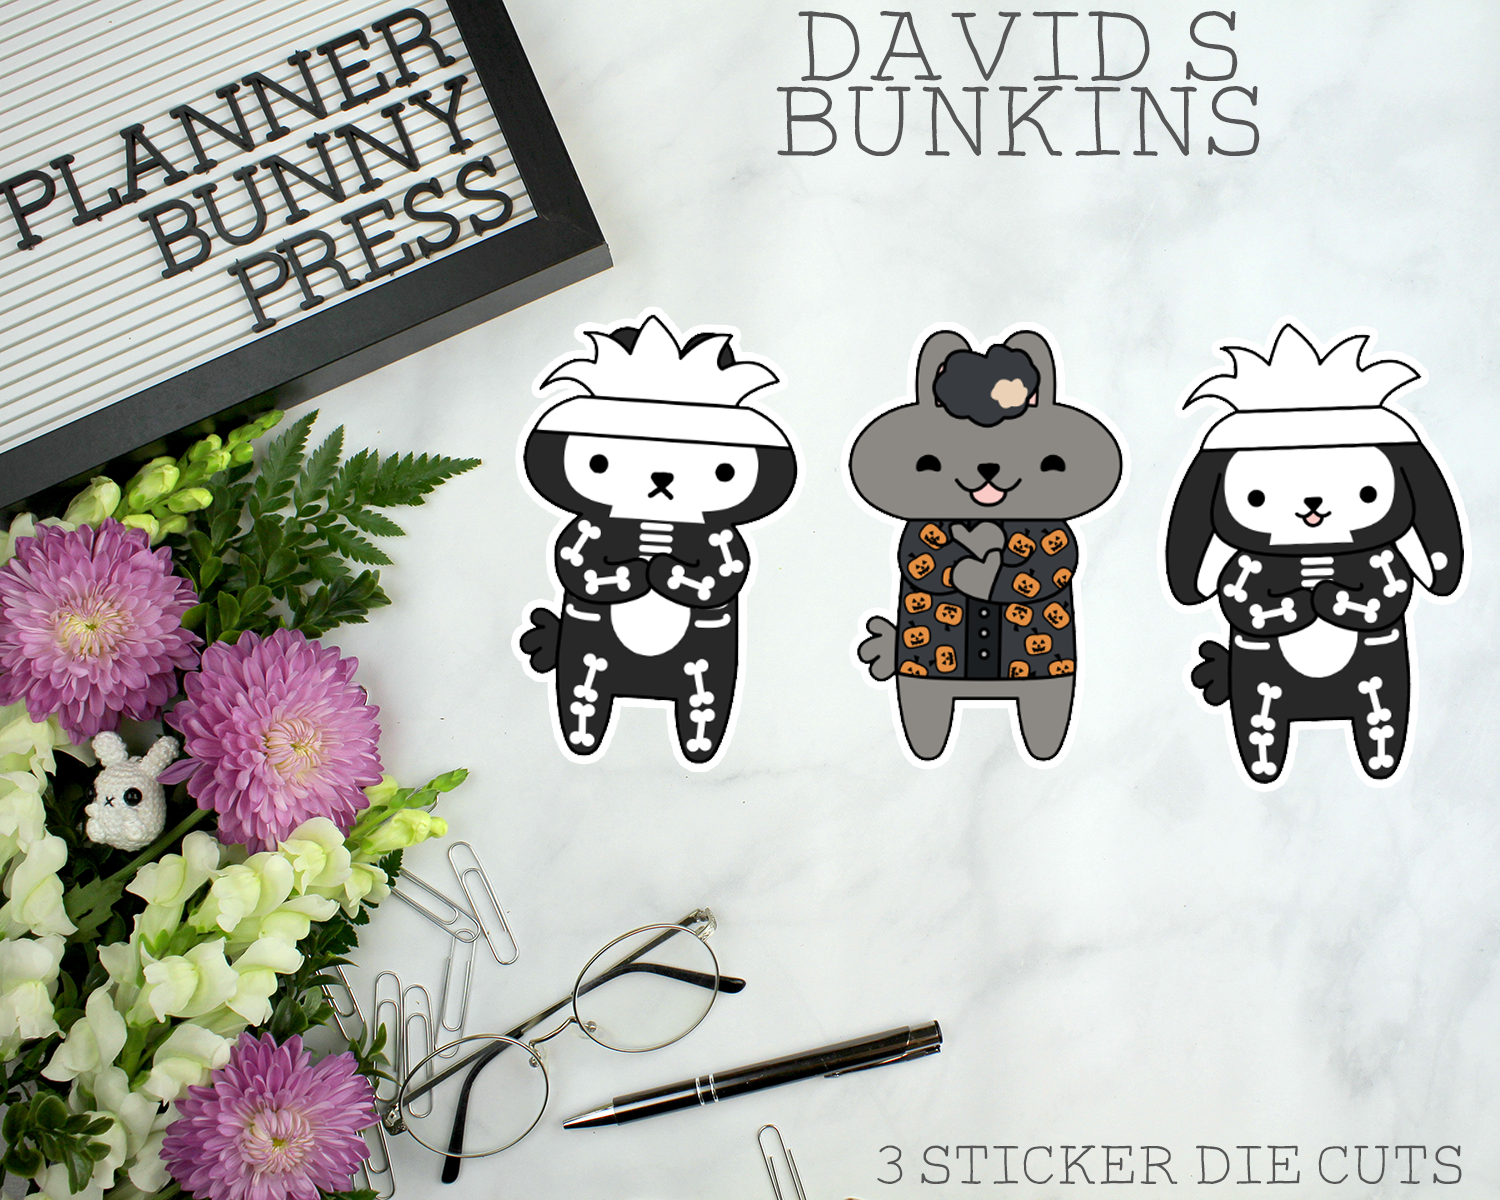 David S Bunkins Sticker Die Cuts